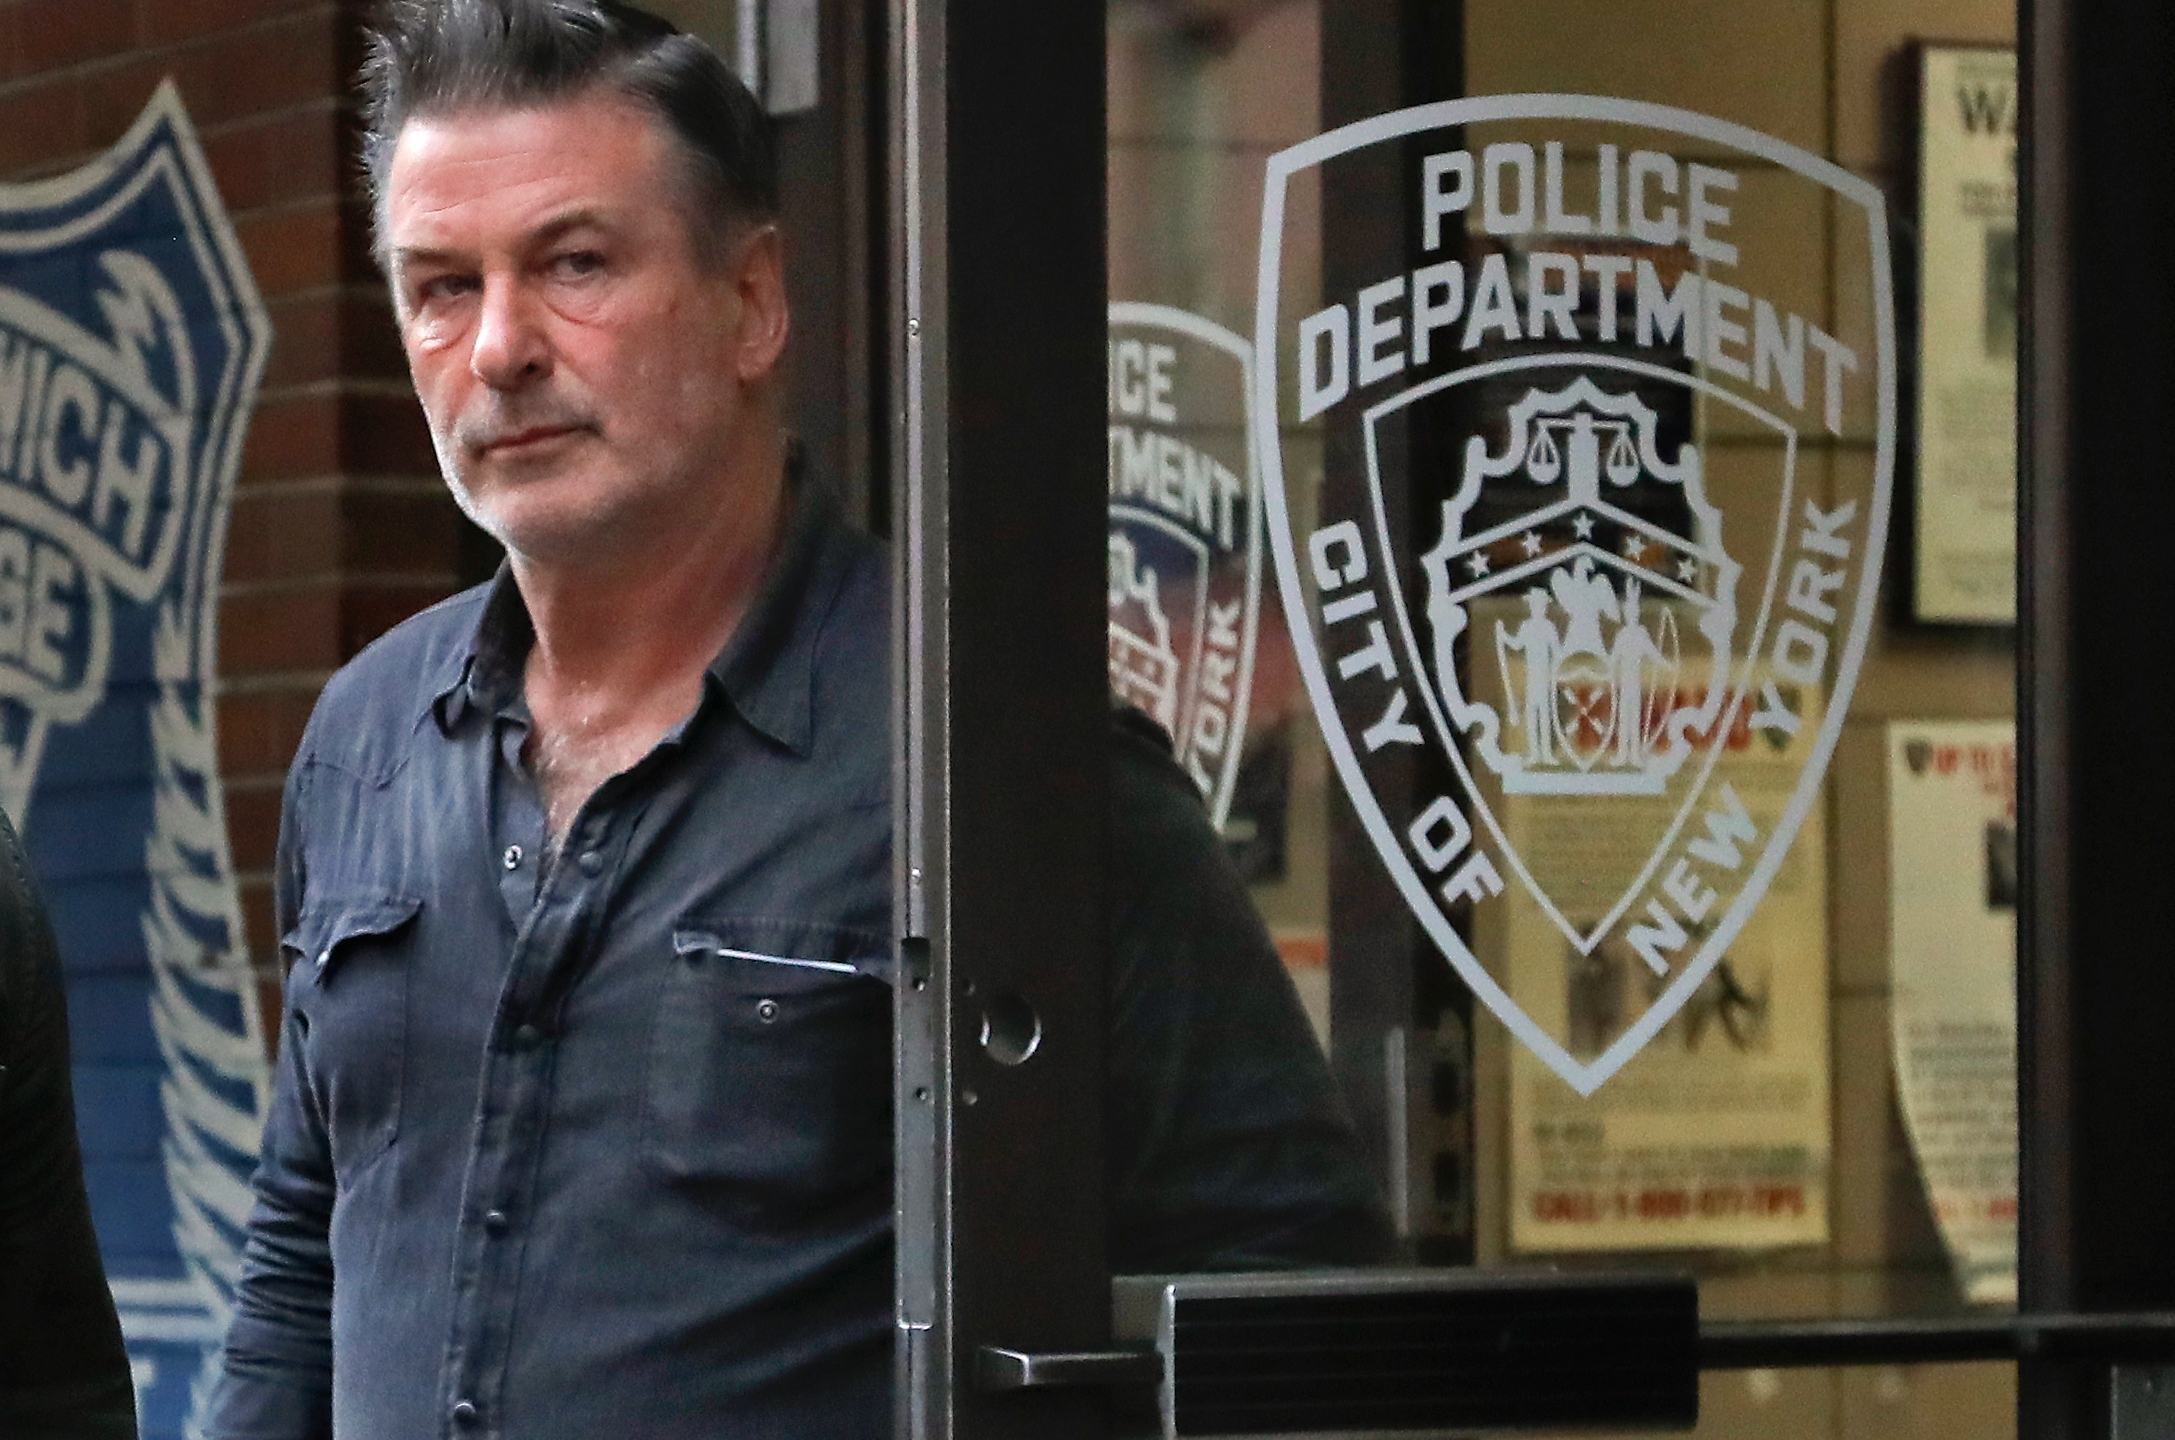 People_Alec_Baldwin_30757-159532.jpg62326080